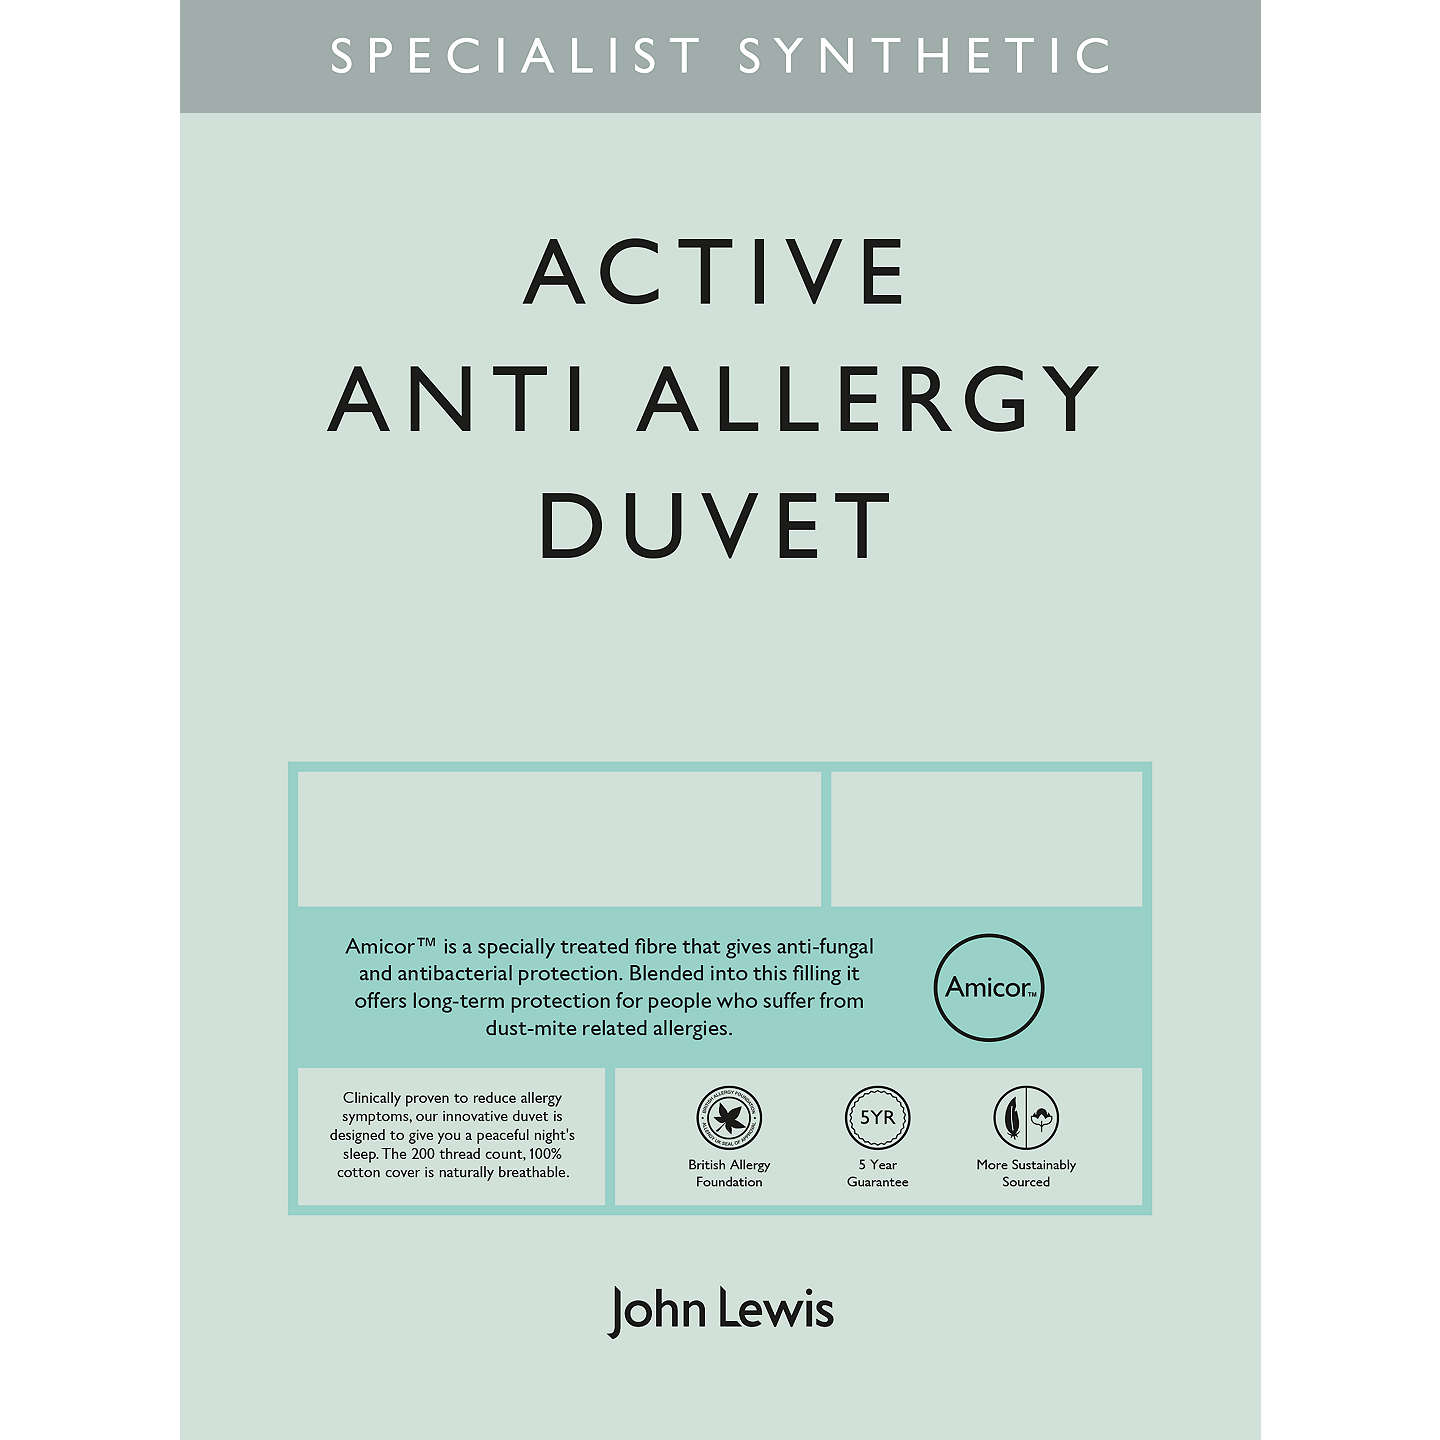 BuyJohn Lewis Specialist Synthetic Active Anti Allergy Duvet, 7 Tog, King Online at johnlewis.com